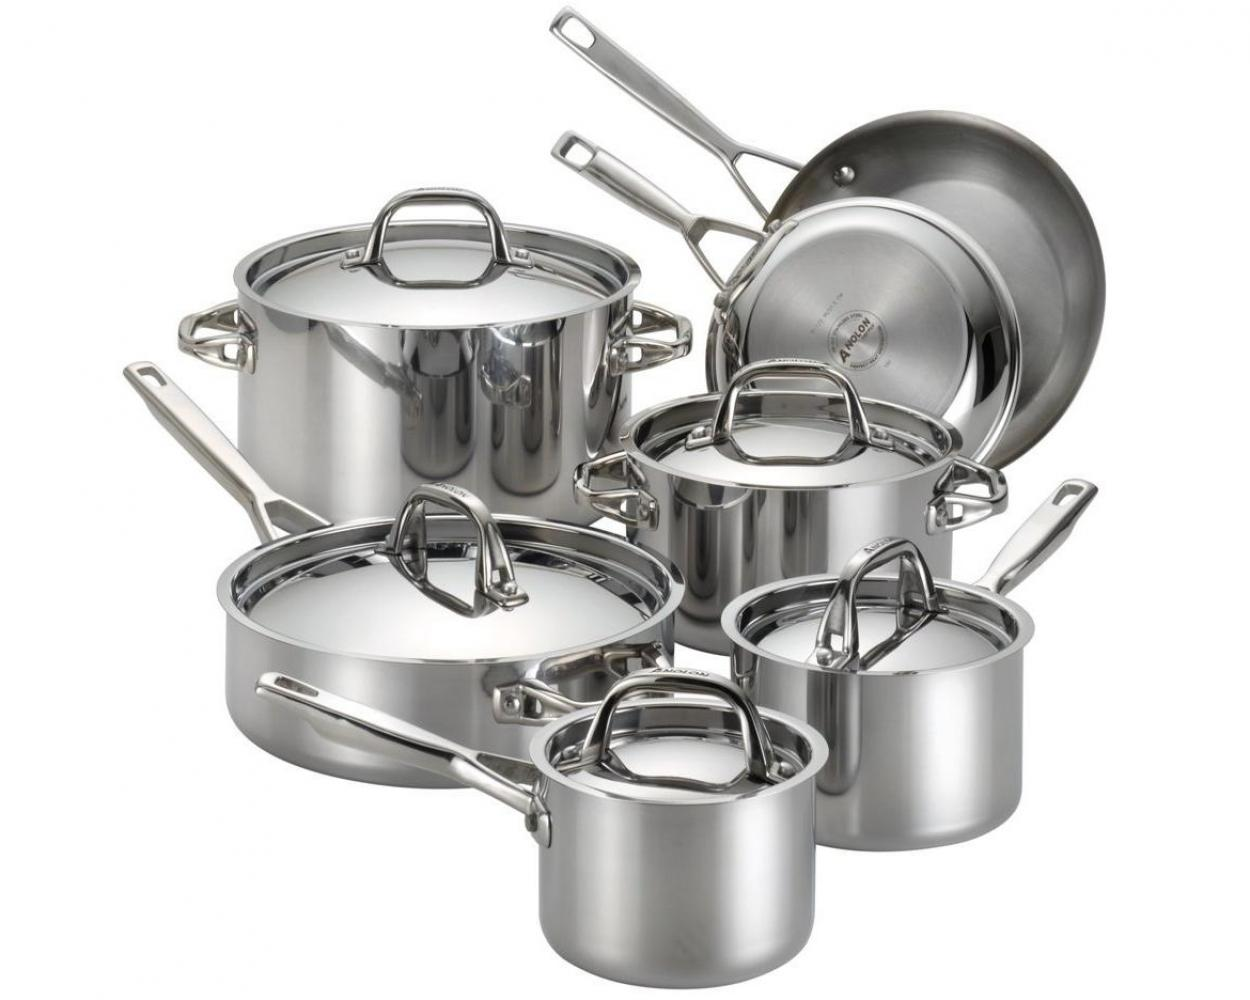 Anolon Tri-Ply Clad 12 Piece Cookware Set in Stainless Steel by Meyer Corp